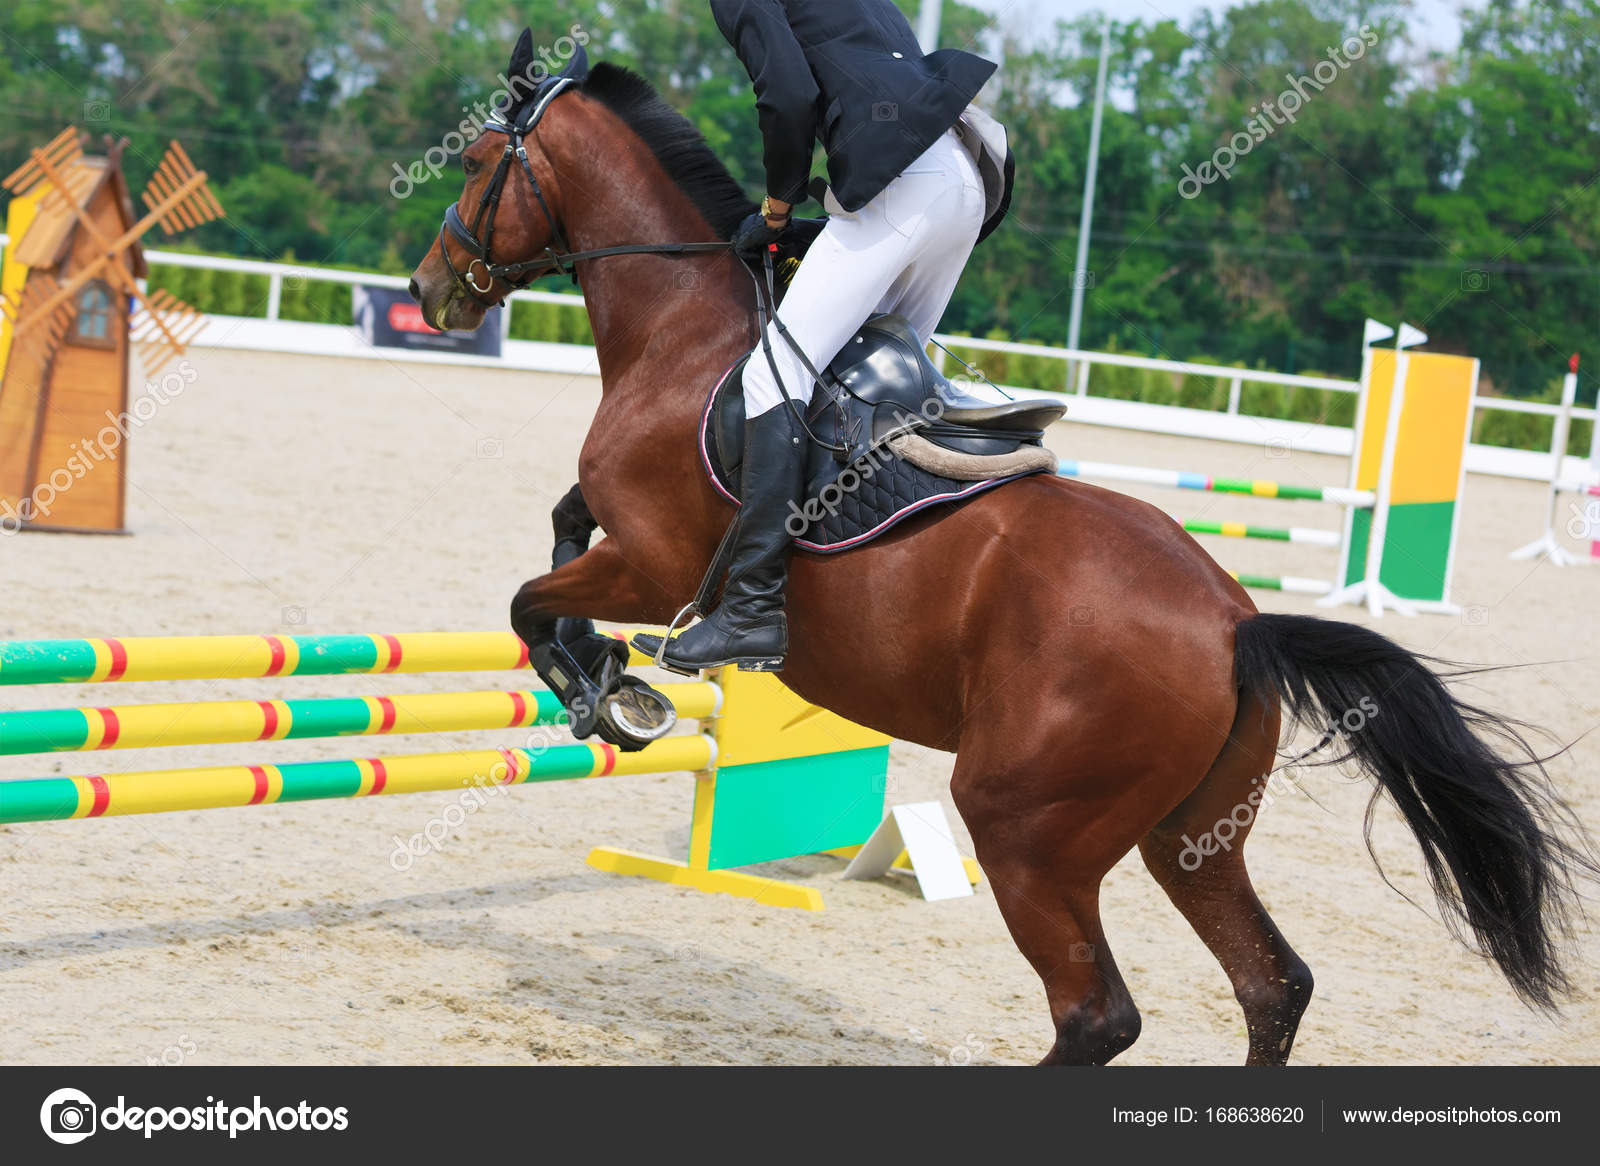 Chestnut Horse Jumping Rider On A Chestnut Horse Jumps Over A Barrier In Jumping Competition Stock Photo C Ovbelov 168638620